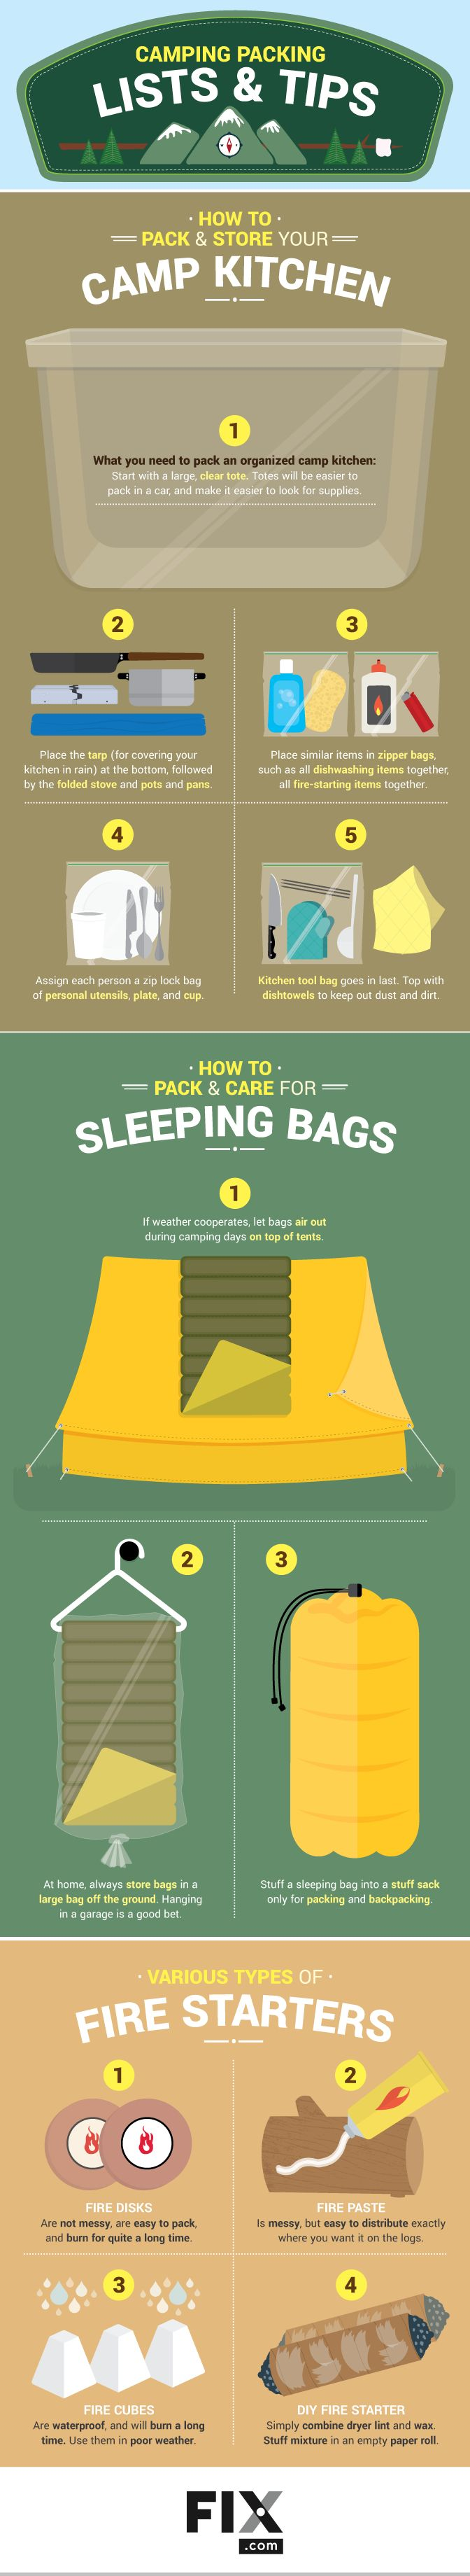 Camping Packing Lists and Tips Everything You Need to Bring to the Campsite #infographic #Camping #Packing